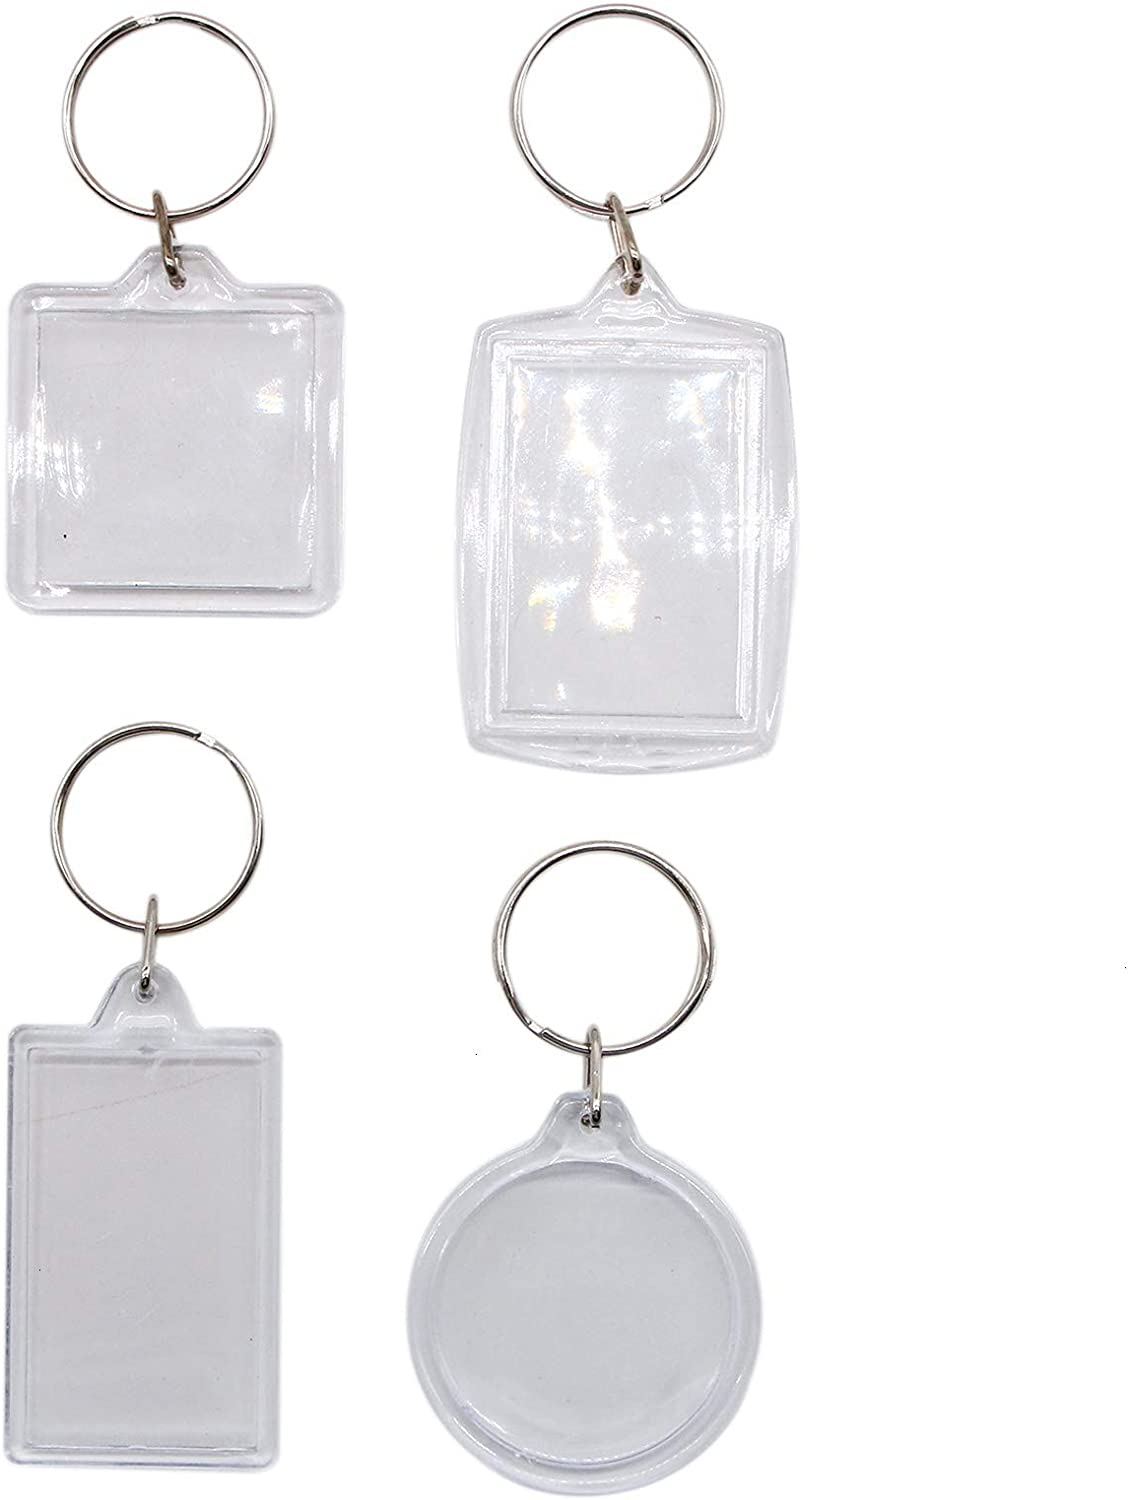 WSSROGY Set of 20 Clear Acrylic Picture Frame Photo Keychains Blank Keyring Keychain for Wallet Size Custom Personalised Insert Photo